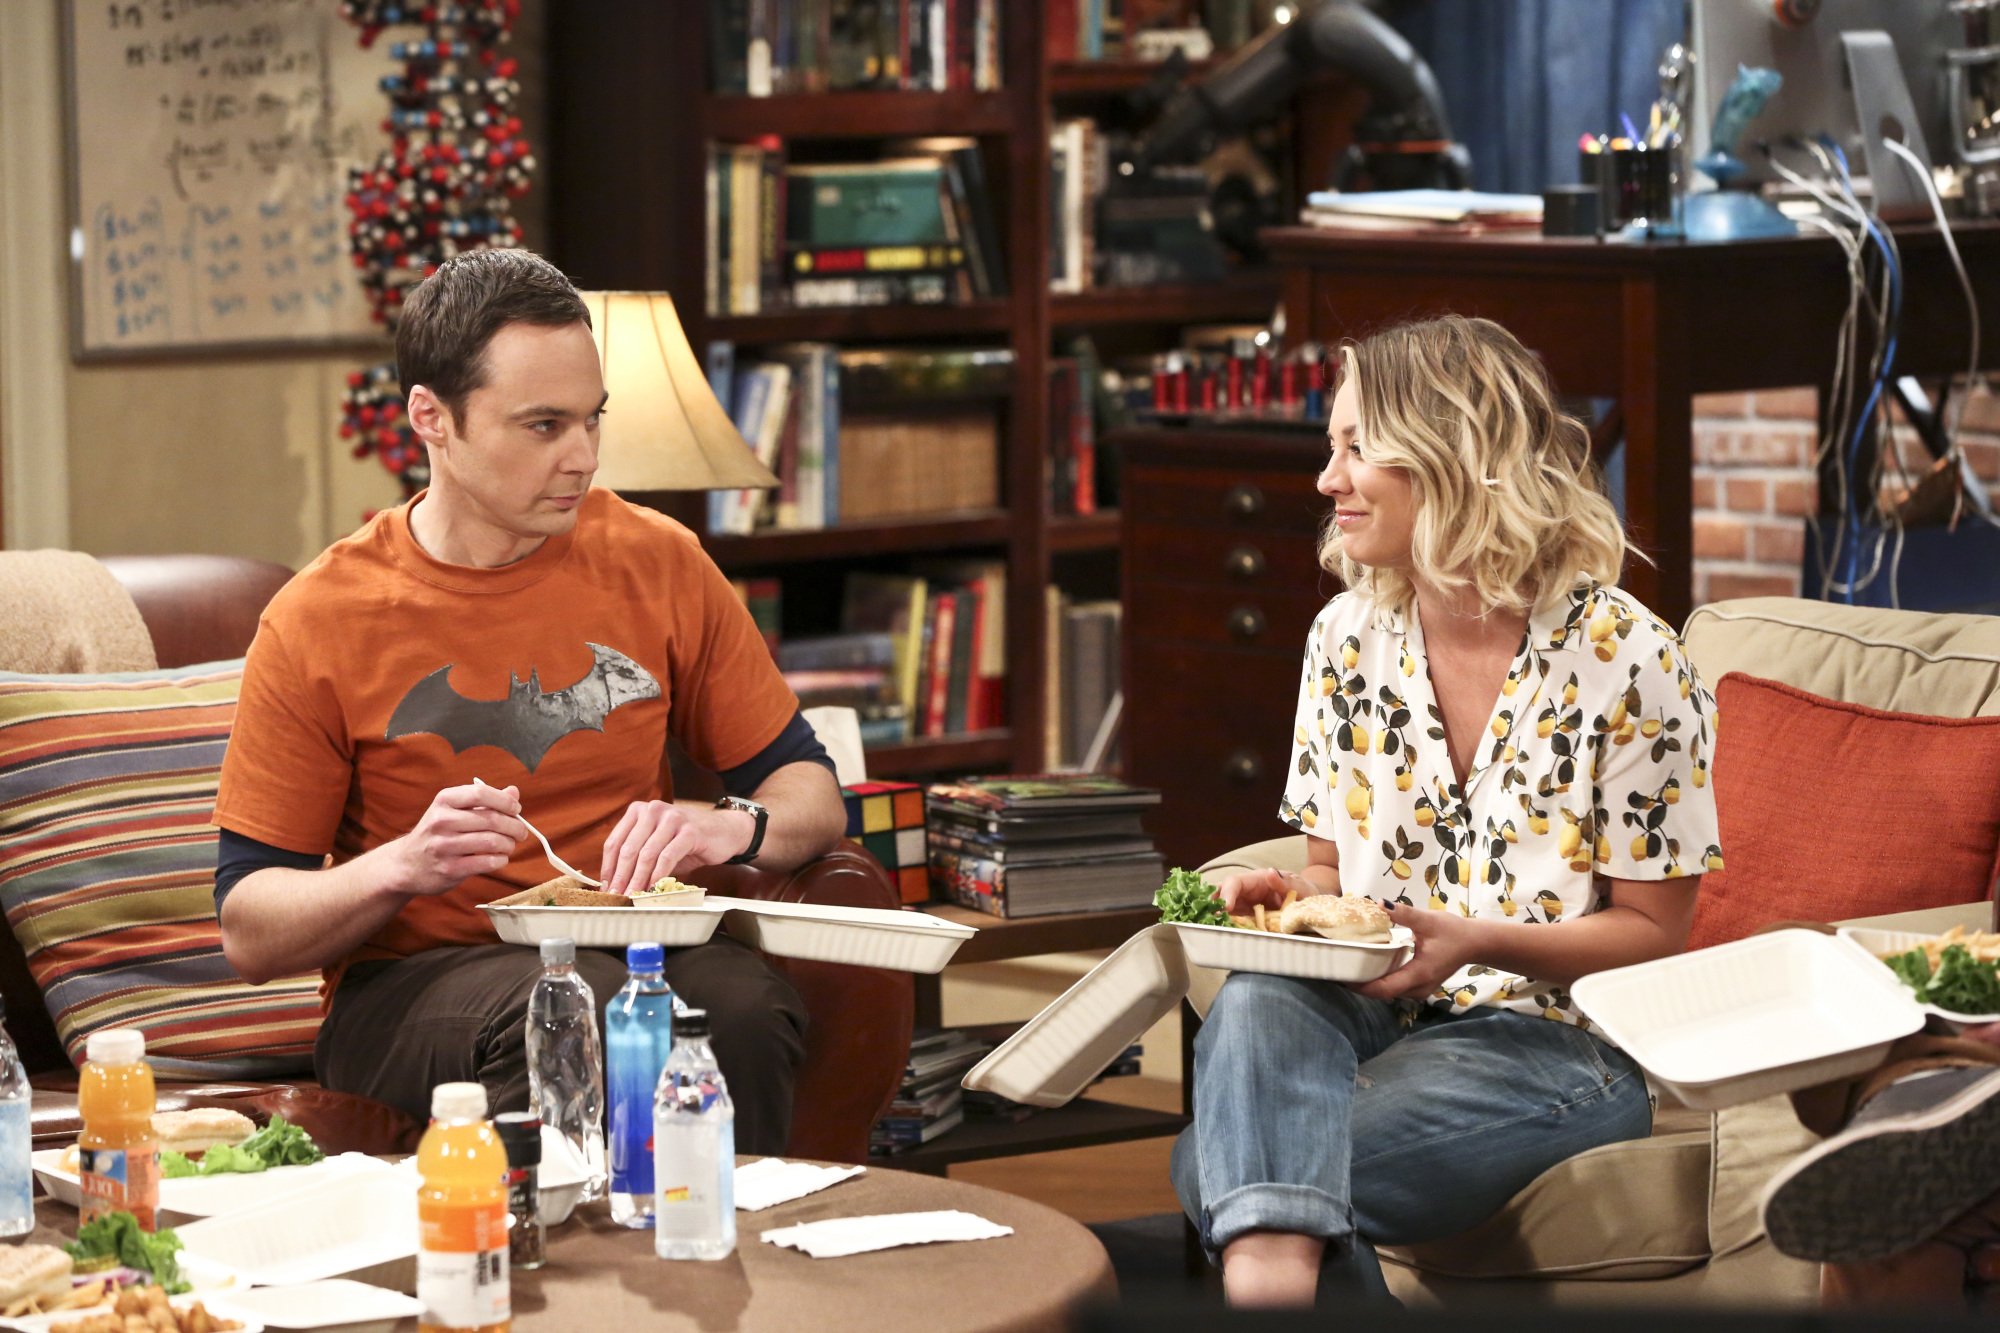 Penny chuckles at Sheldon while the gang partakes in some takeout.